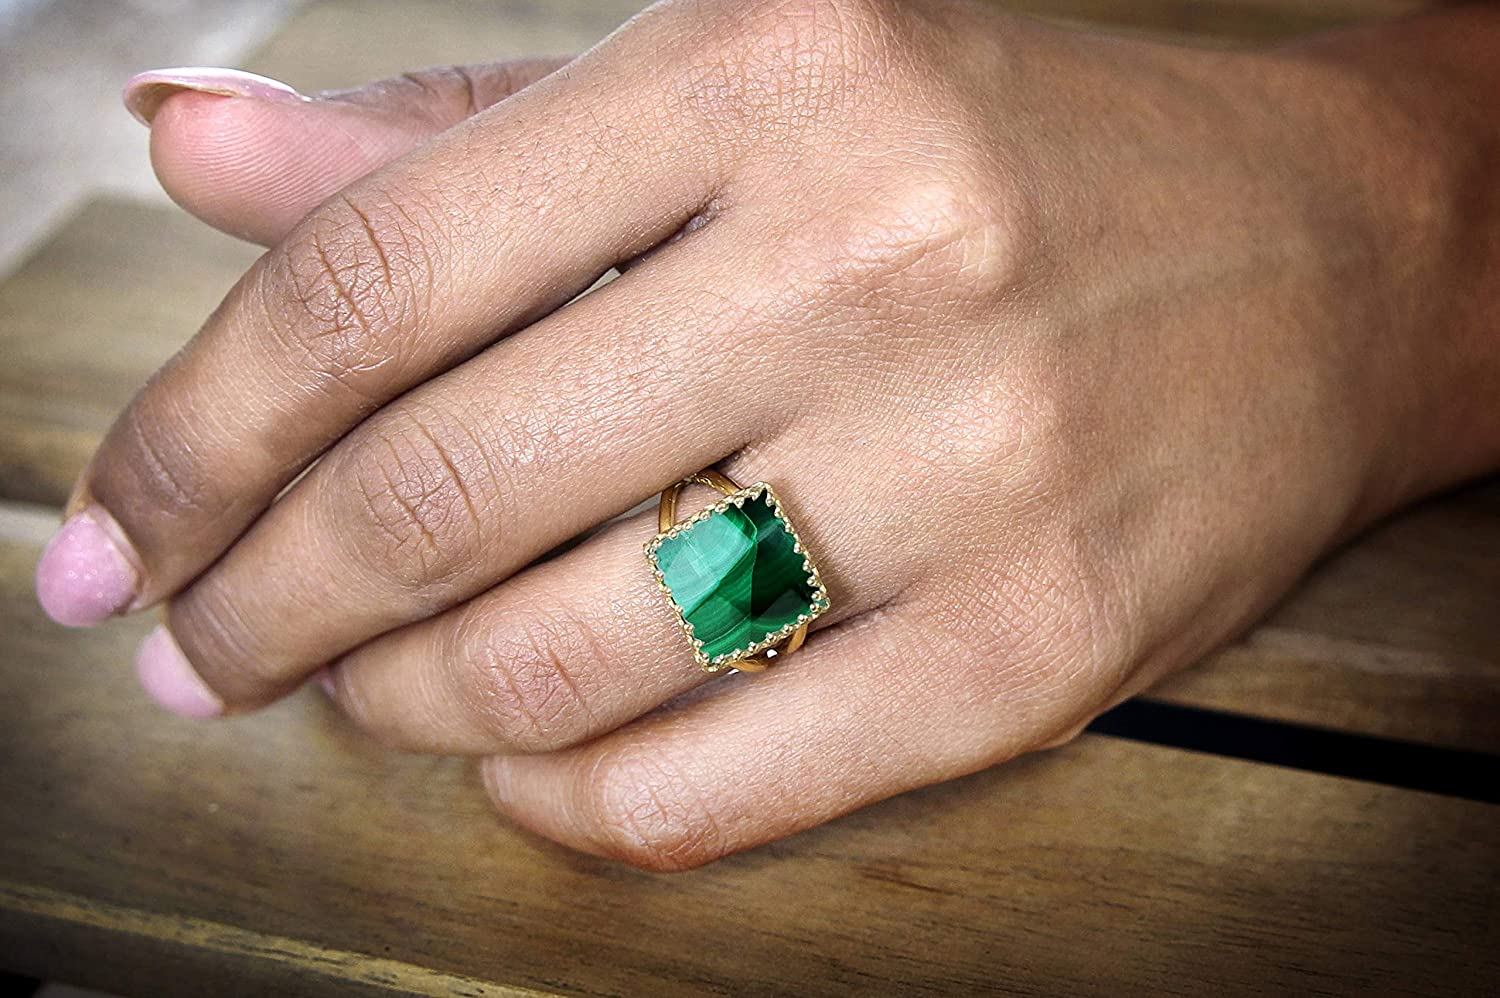 Handmade Gold Jewelry for Any Occasion Stunning Marbled Malachite Ring in 14k Gold-filled Band Party Ring Gift Ring Free Gift Box Anemone Jewelry Classy 14k Gold Rings for Women Casual Ring